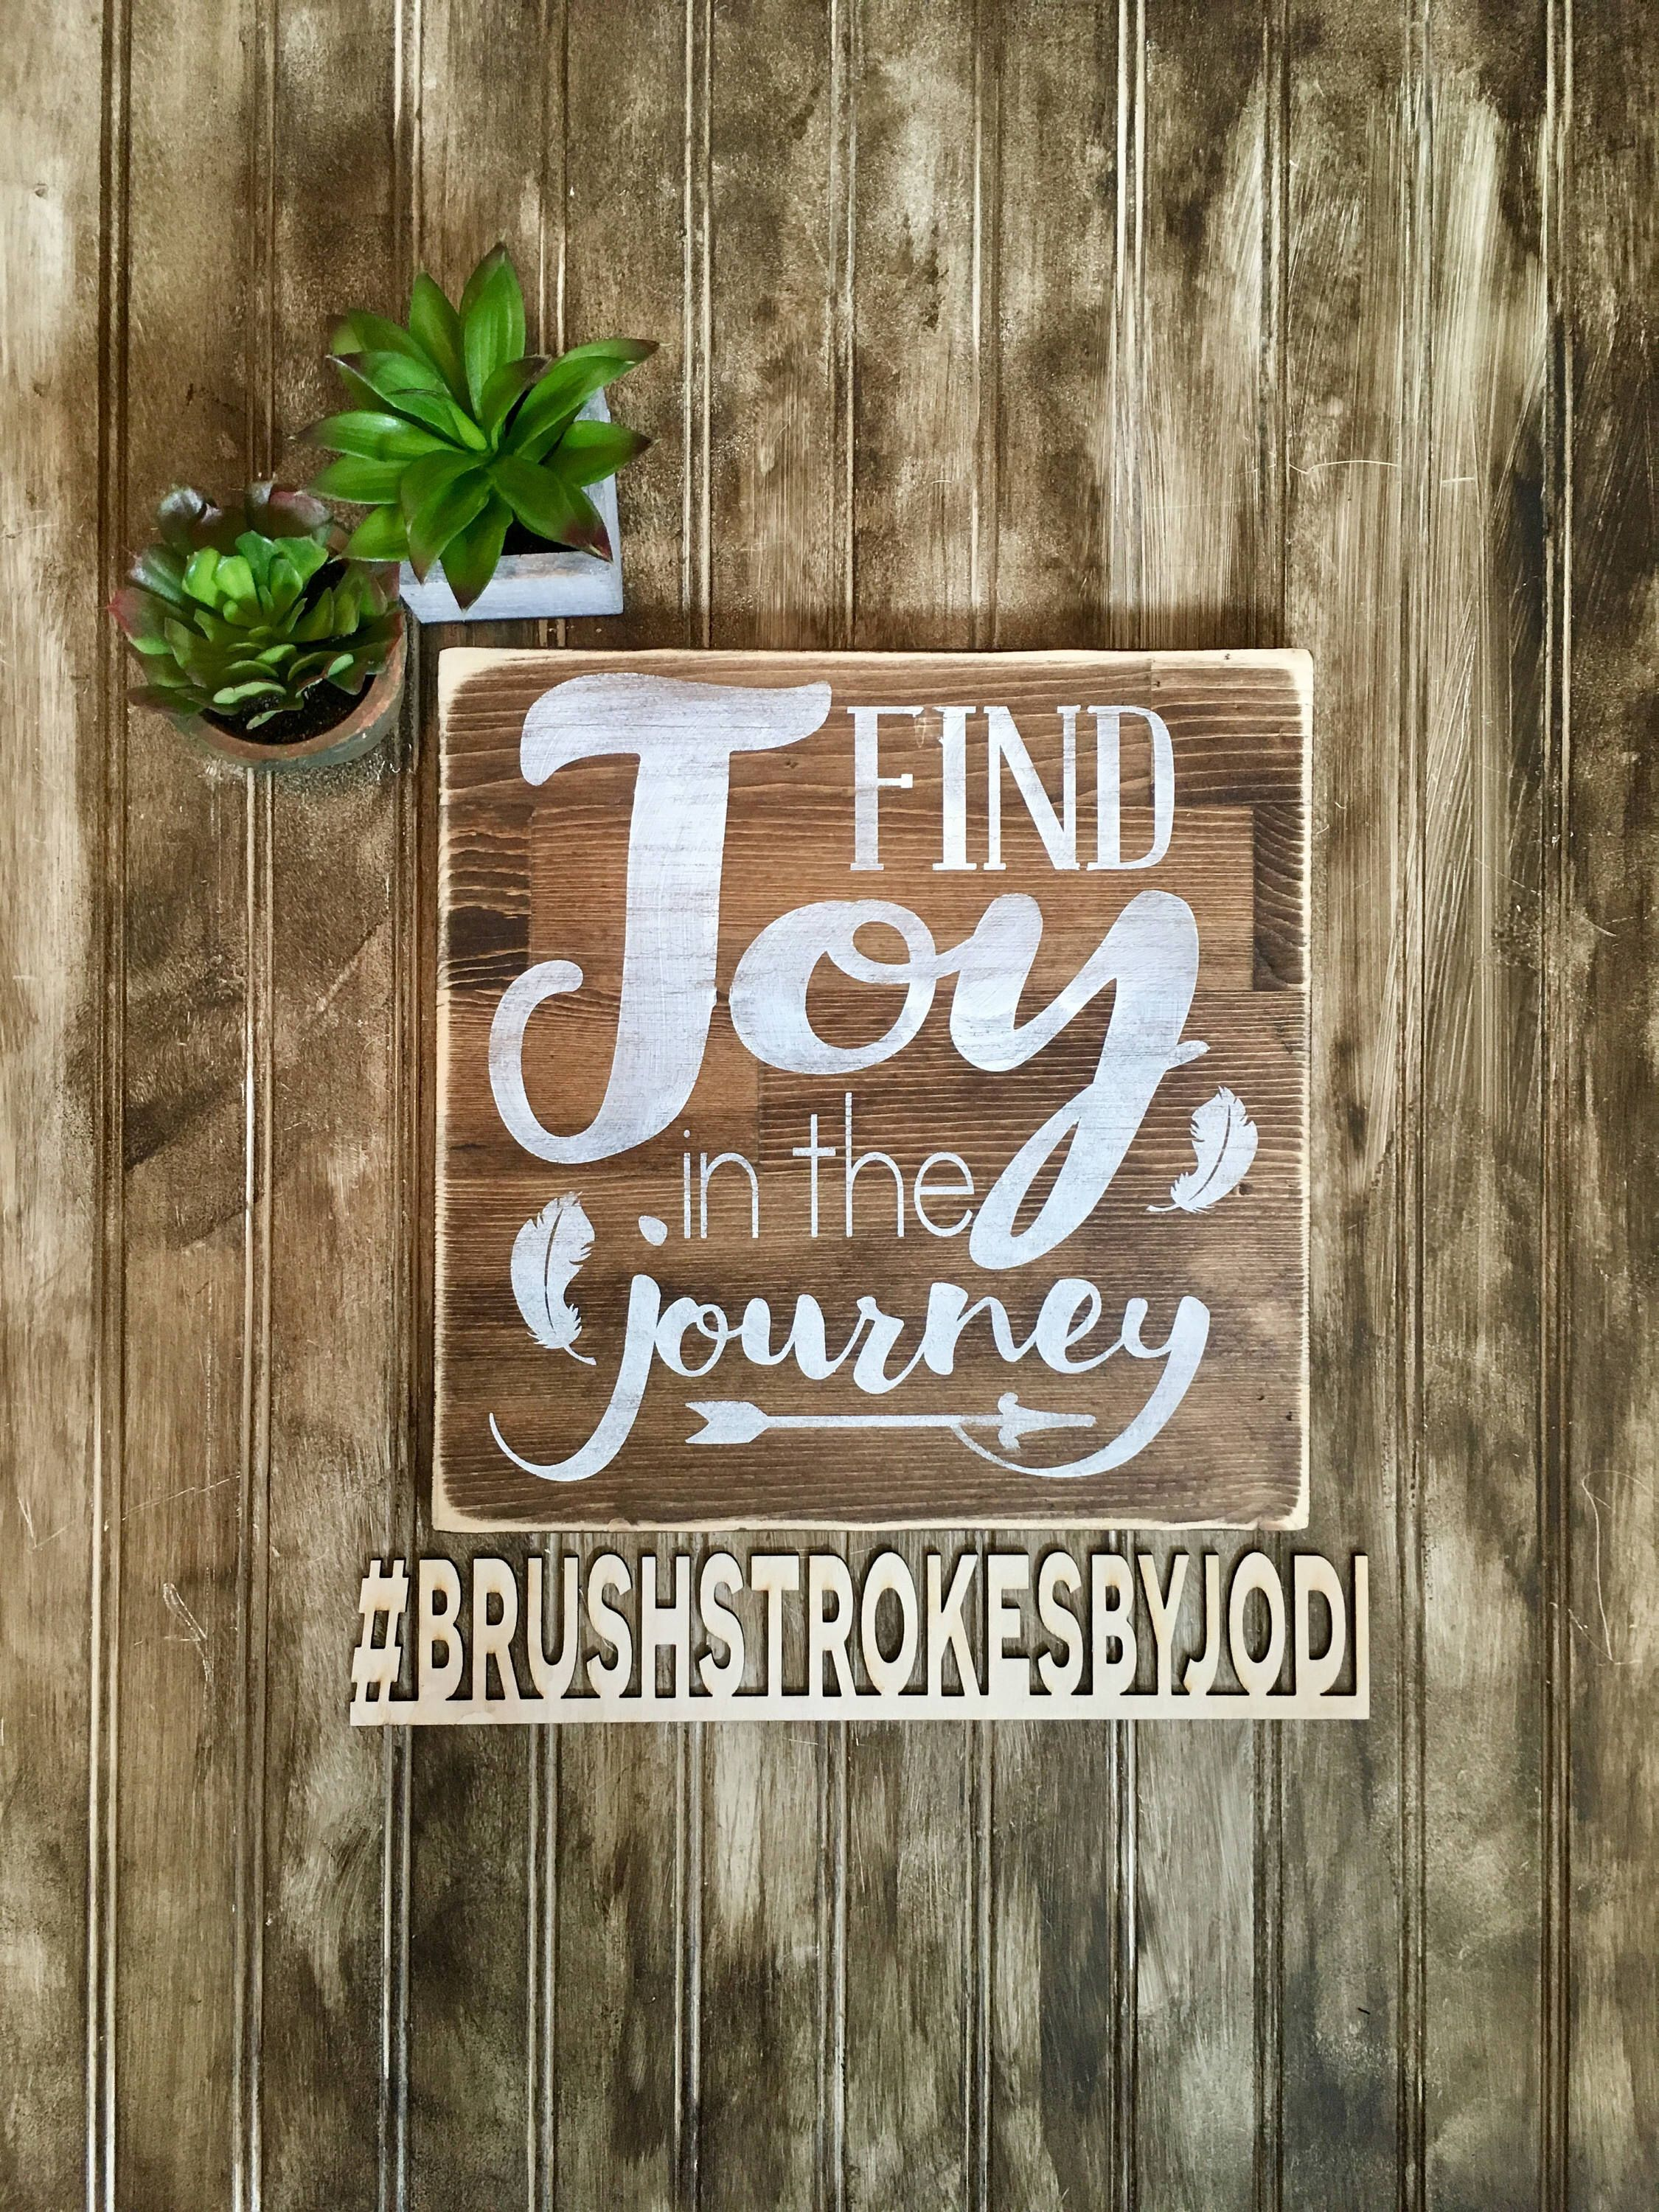 Find joy in the Journey, rustic wood sign, handpainted wooden signs, wooden signs, wood sign, inspirational signs, inspiring, rustic sign by BrushstrokesByJodi on Etsy https://www.etsy.com/ca/listing/525613084/find-joy-in-the-journey-rustic-wood-sign